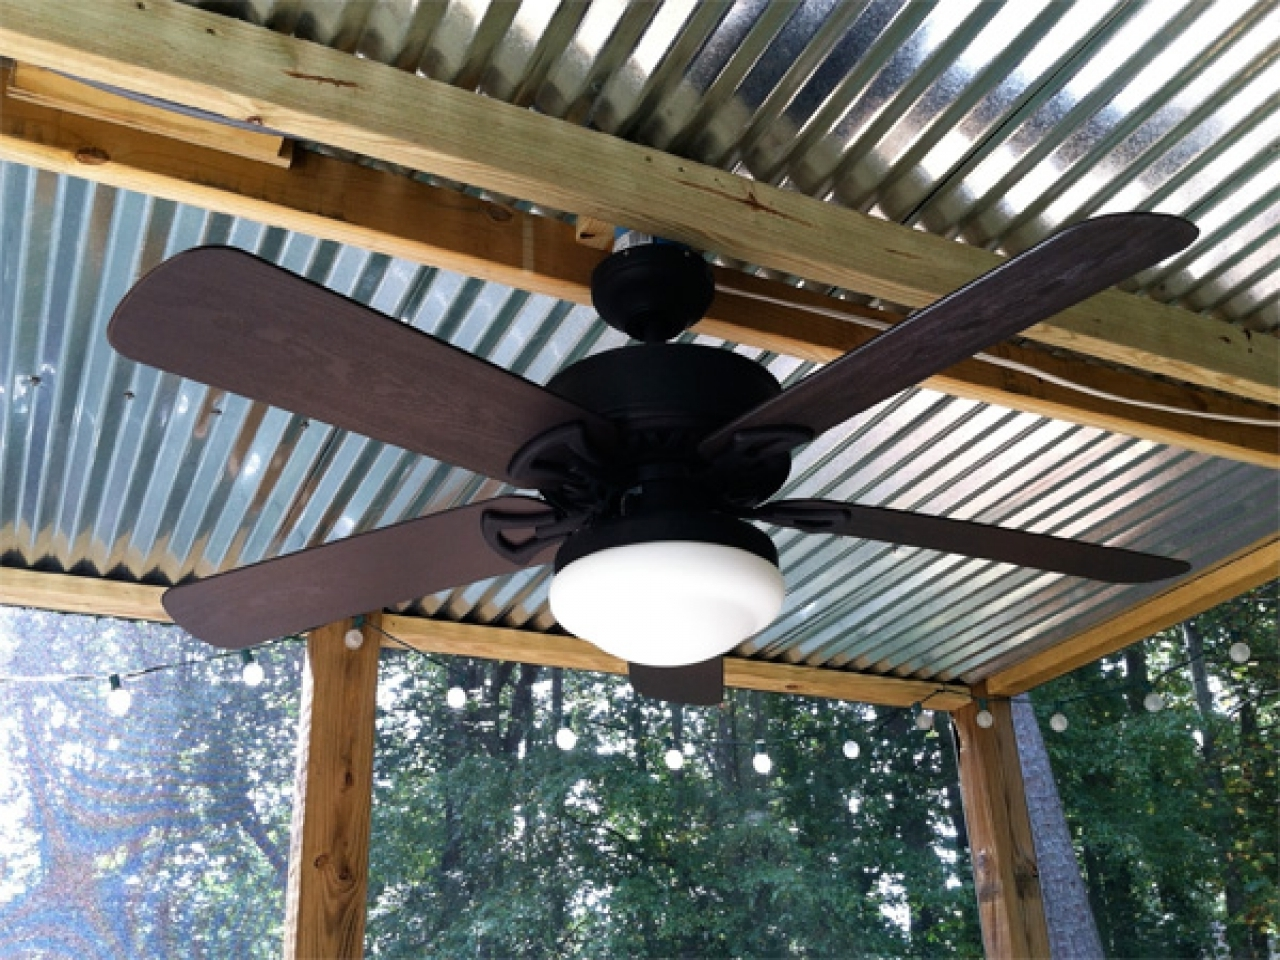 Widely Used Outdoor Porch Ceiling Fans With Lights In Nice Outdoor Patio Ceiling Fans Patio Ceiling Fans With Lights (View 13 of 20)